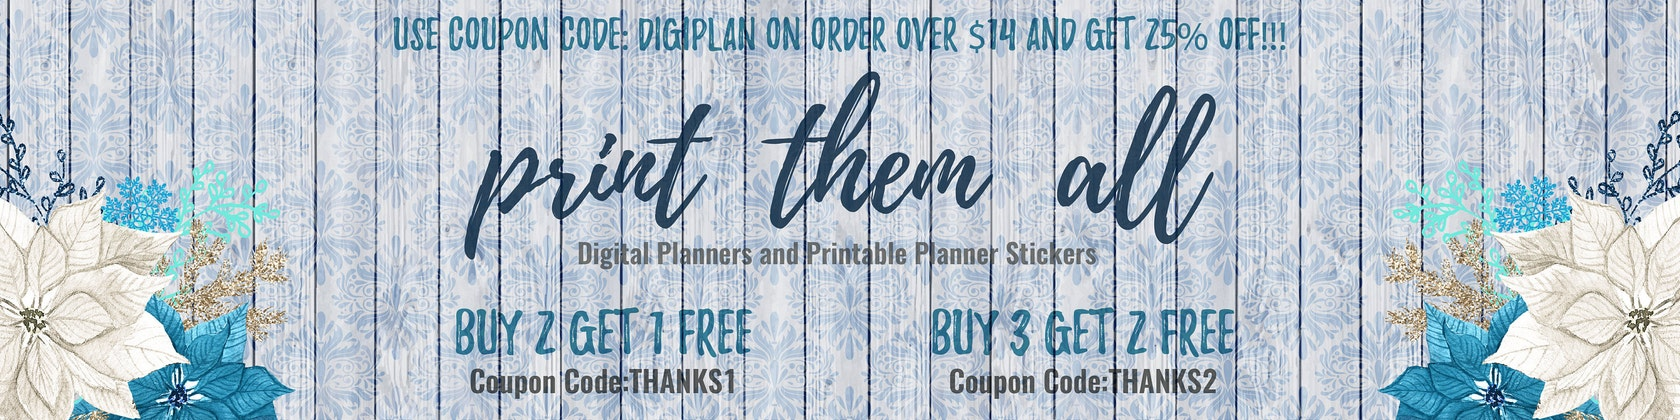 Printable planner stickers digital planner by printthemallstudio printthemallstudio fandeluxe Gallery